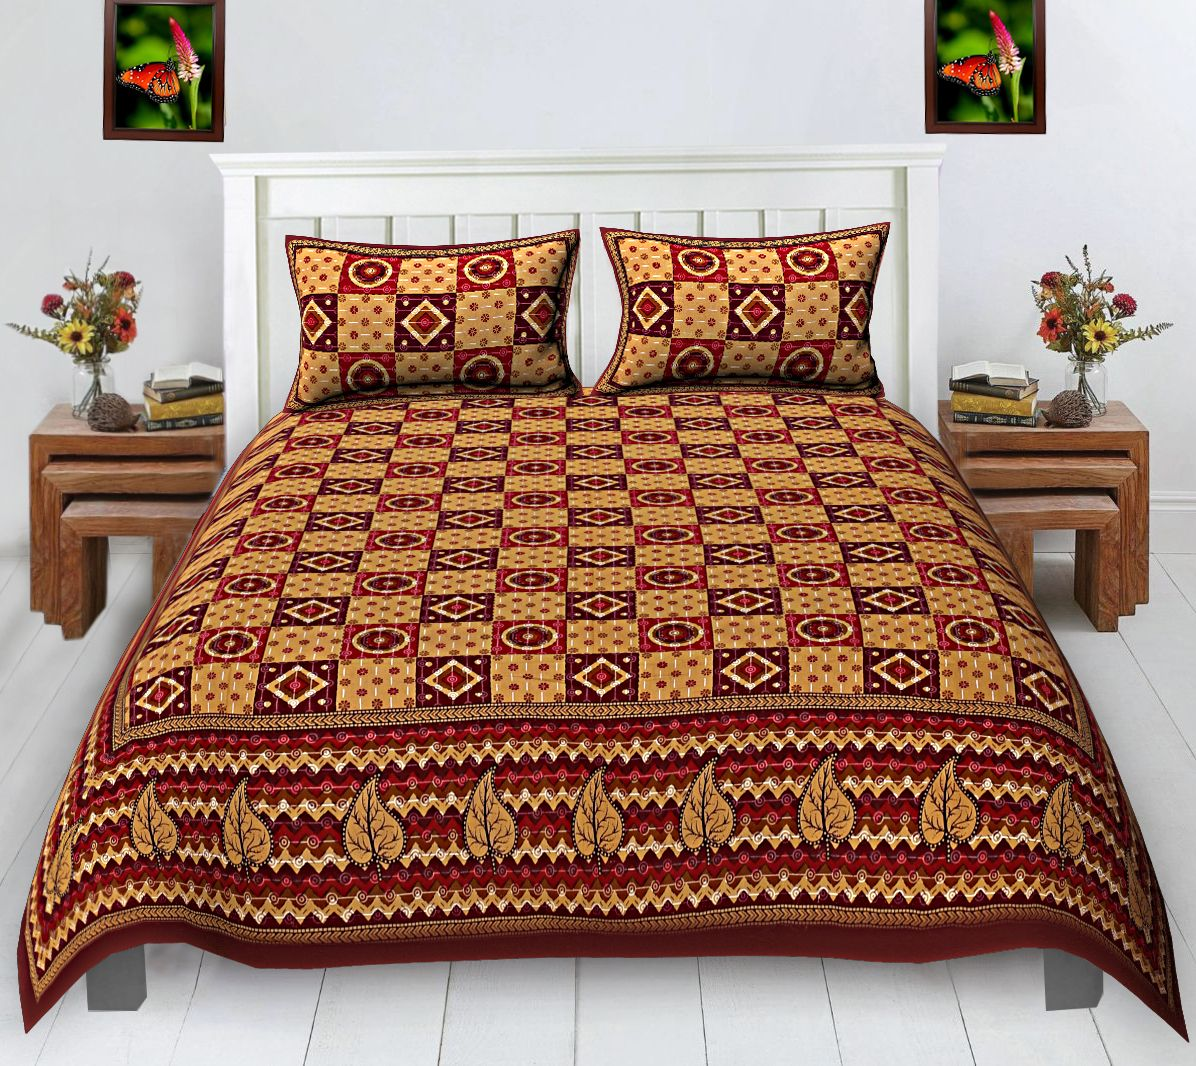 Kuber Industries 160 TC Cotton Double Bedsheet with Two Pillow Covers - Maroon